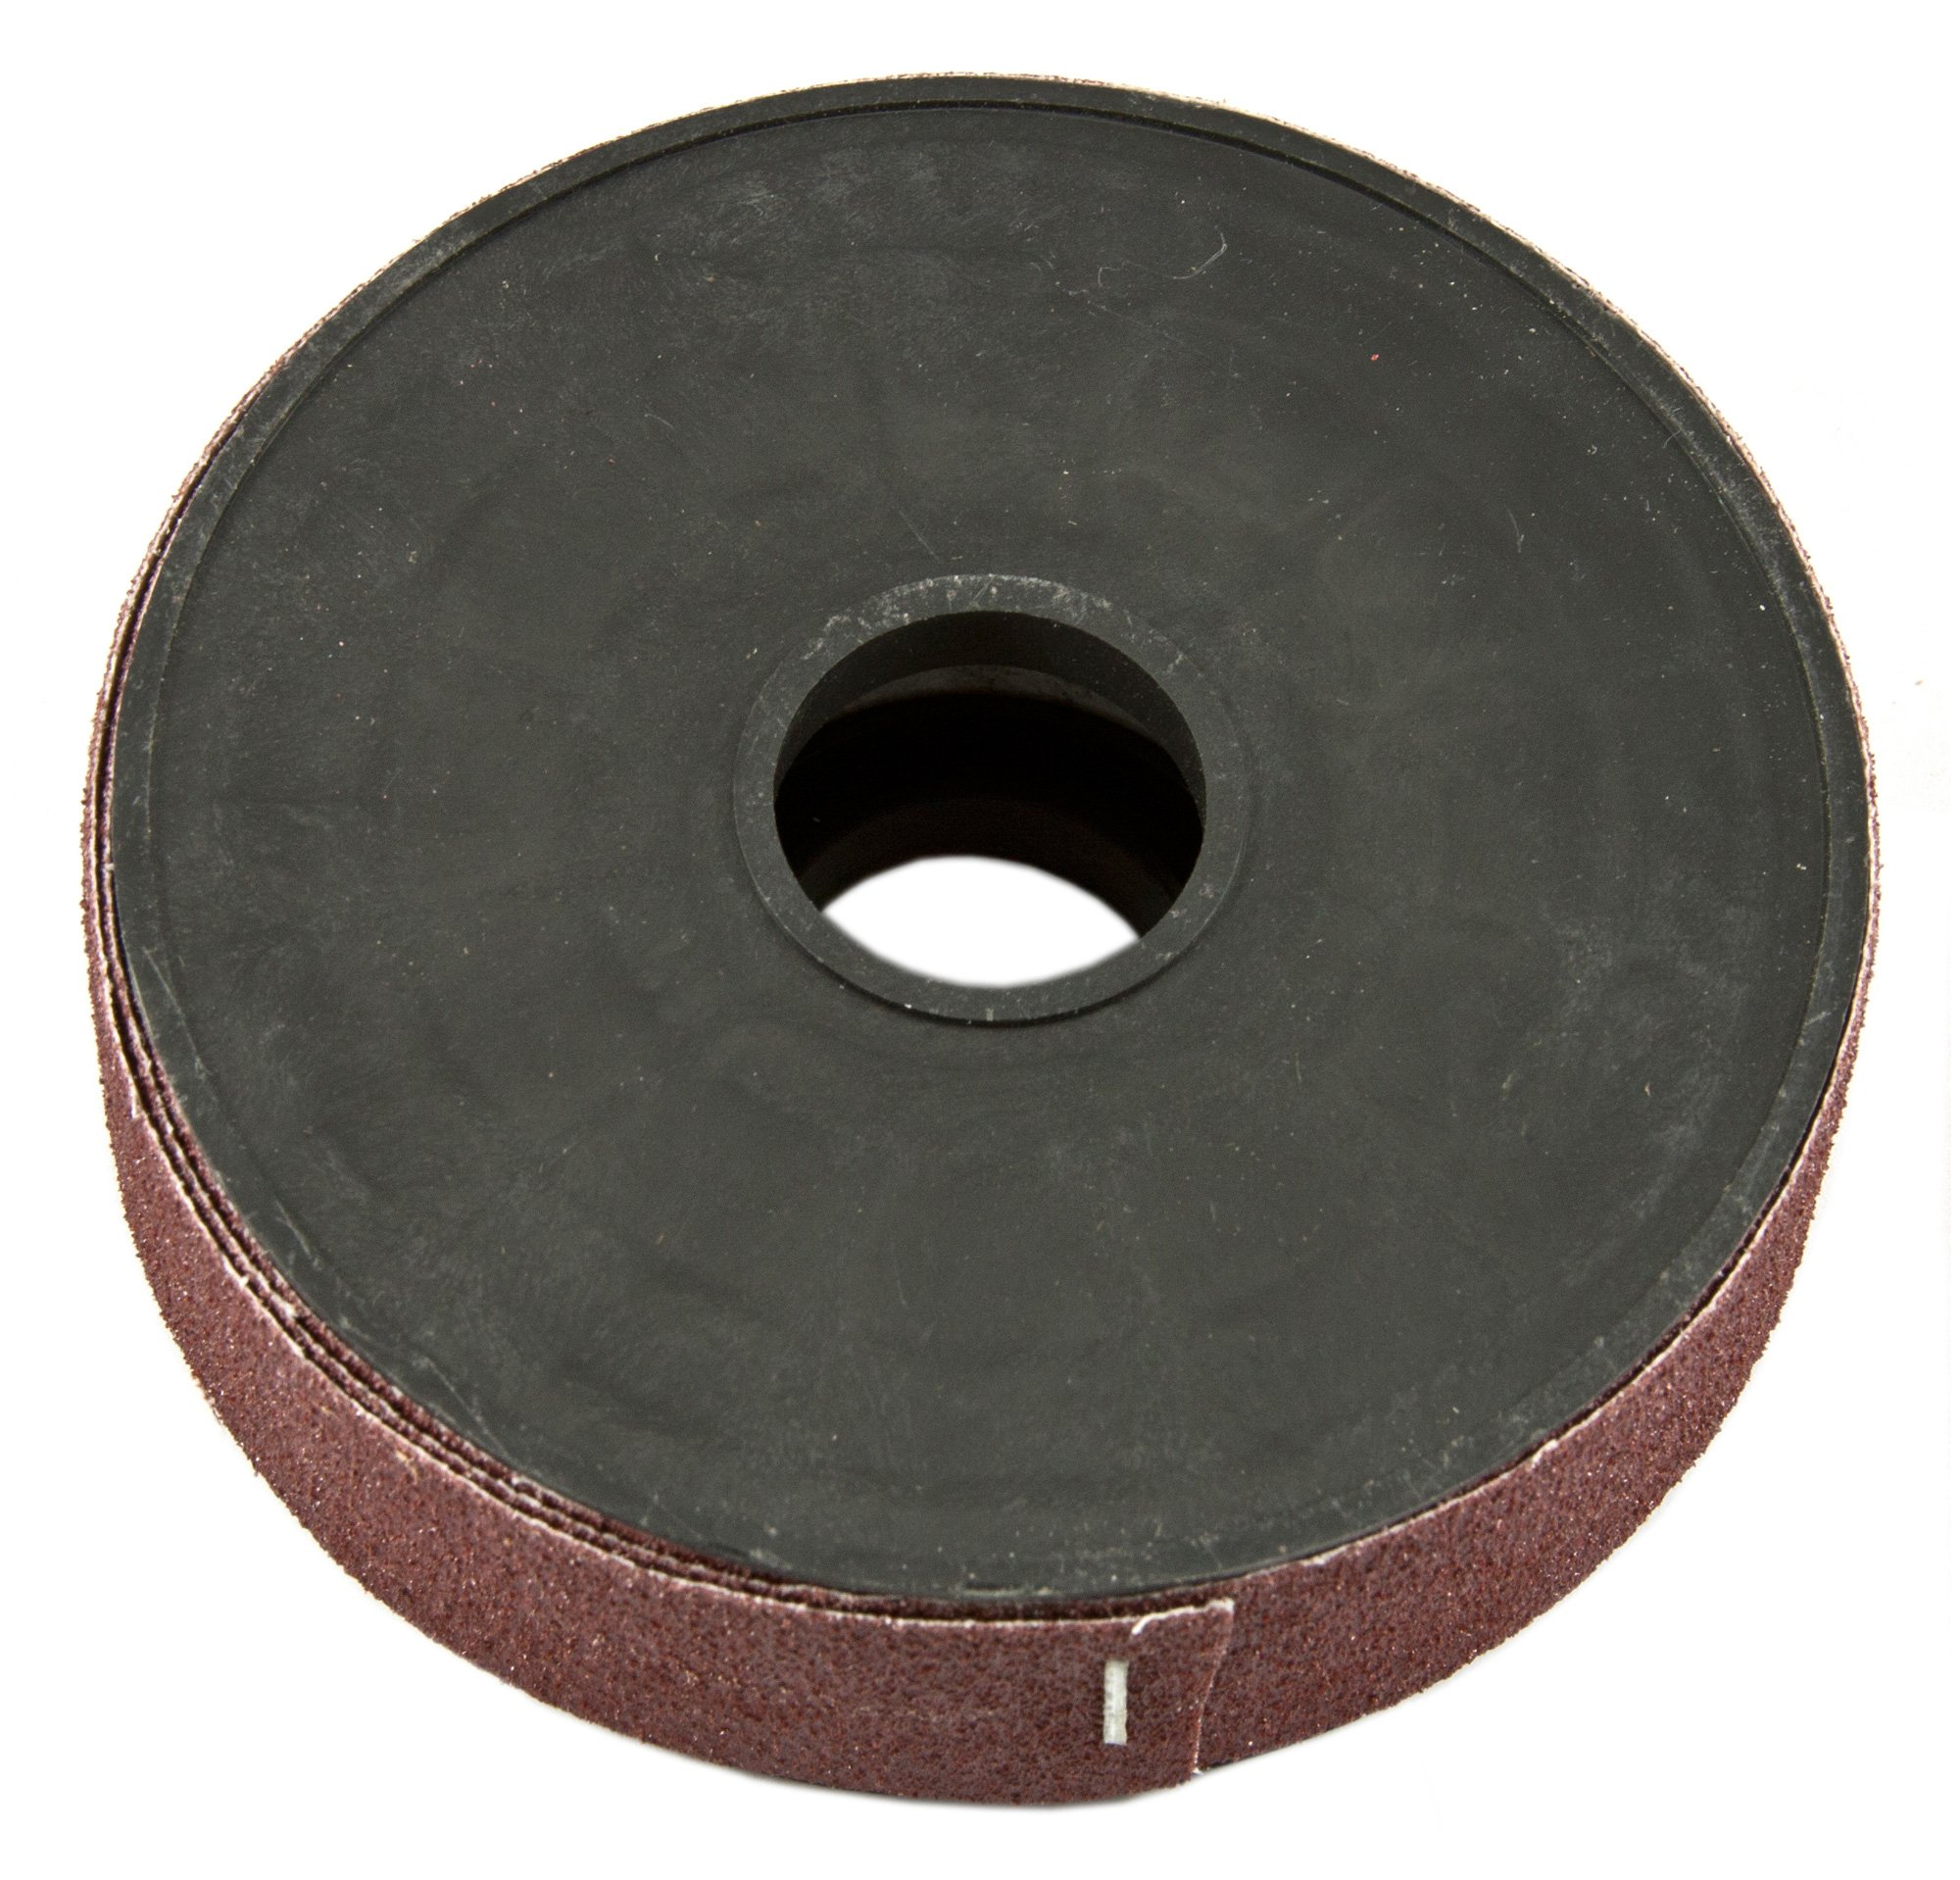 Forney 71803 Emery Cloth, 80-Grit, 1-Inch-by-10-Yard Bench Roll by Forney (Image #2)